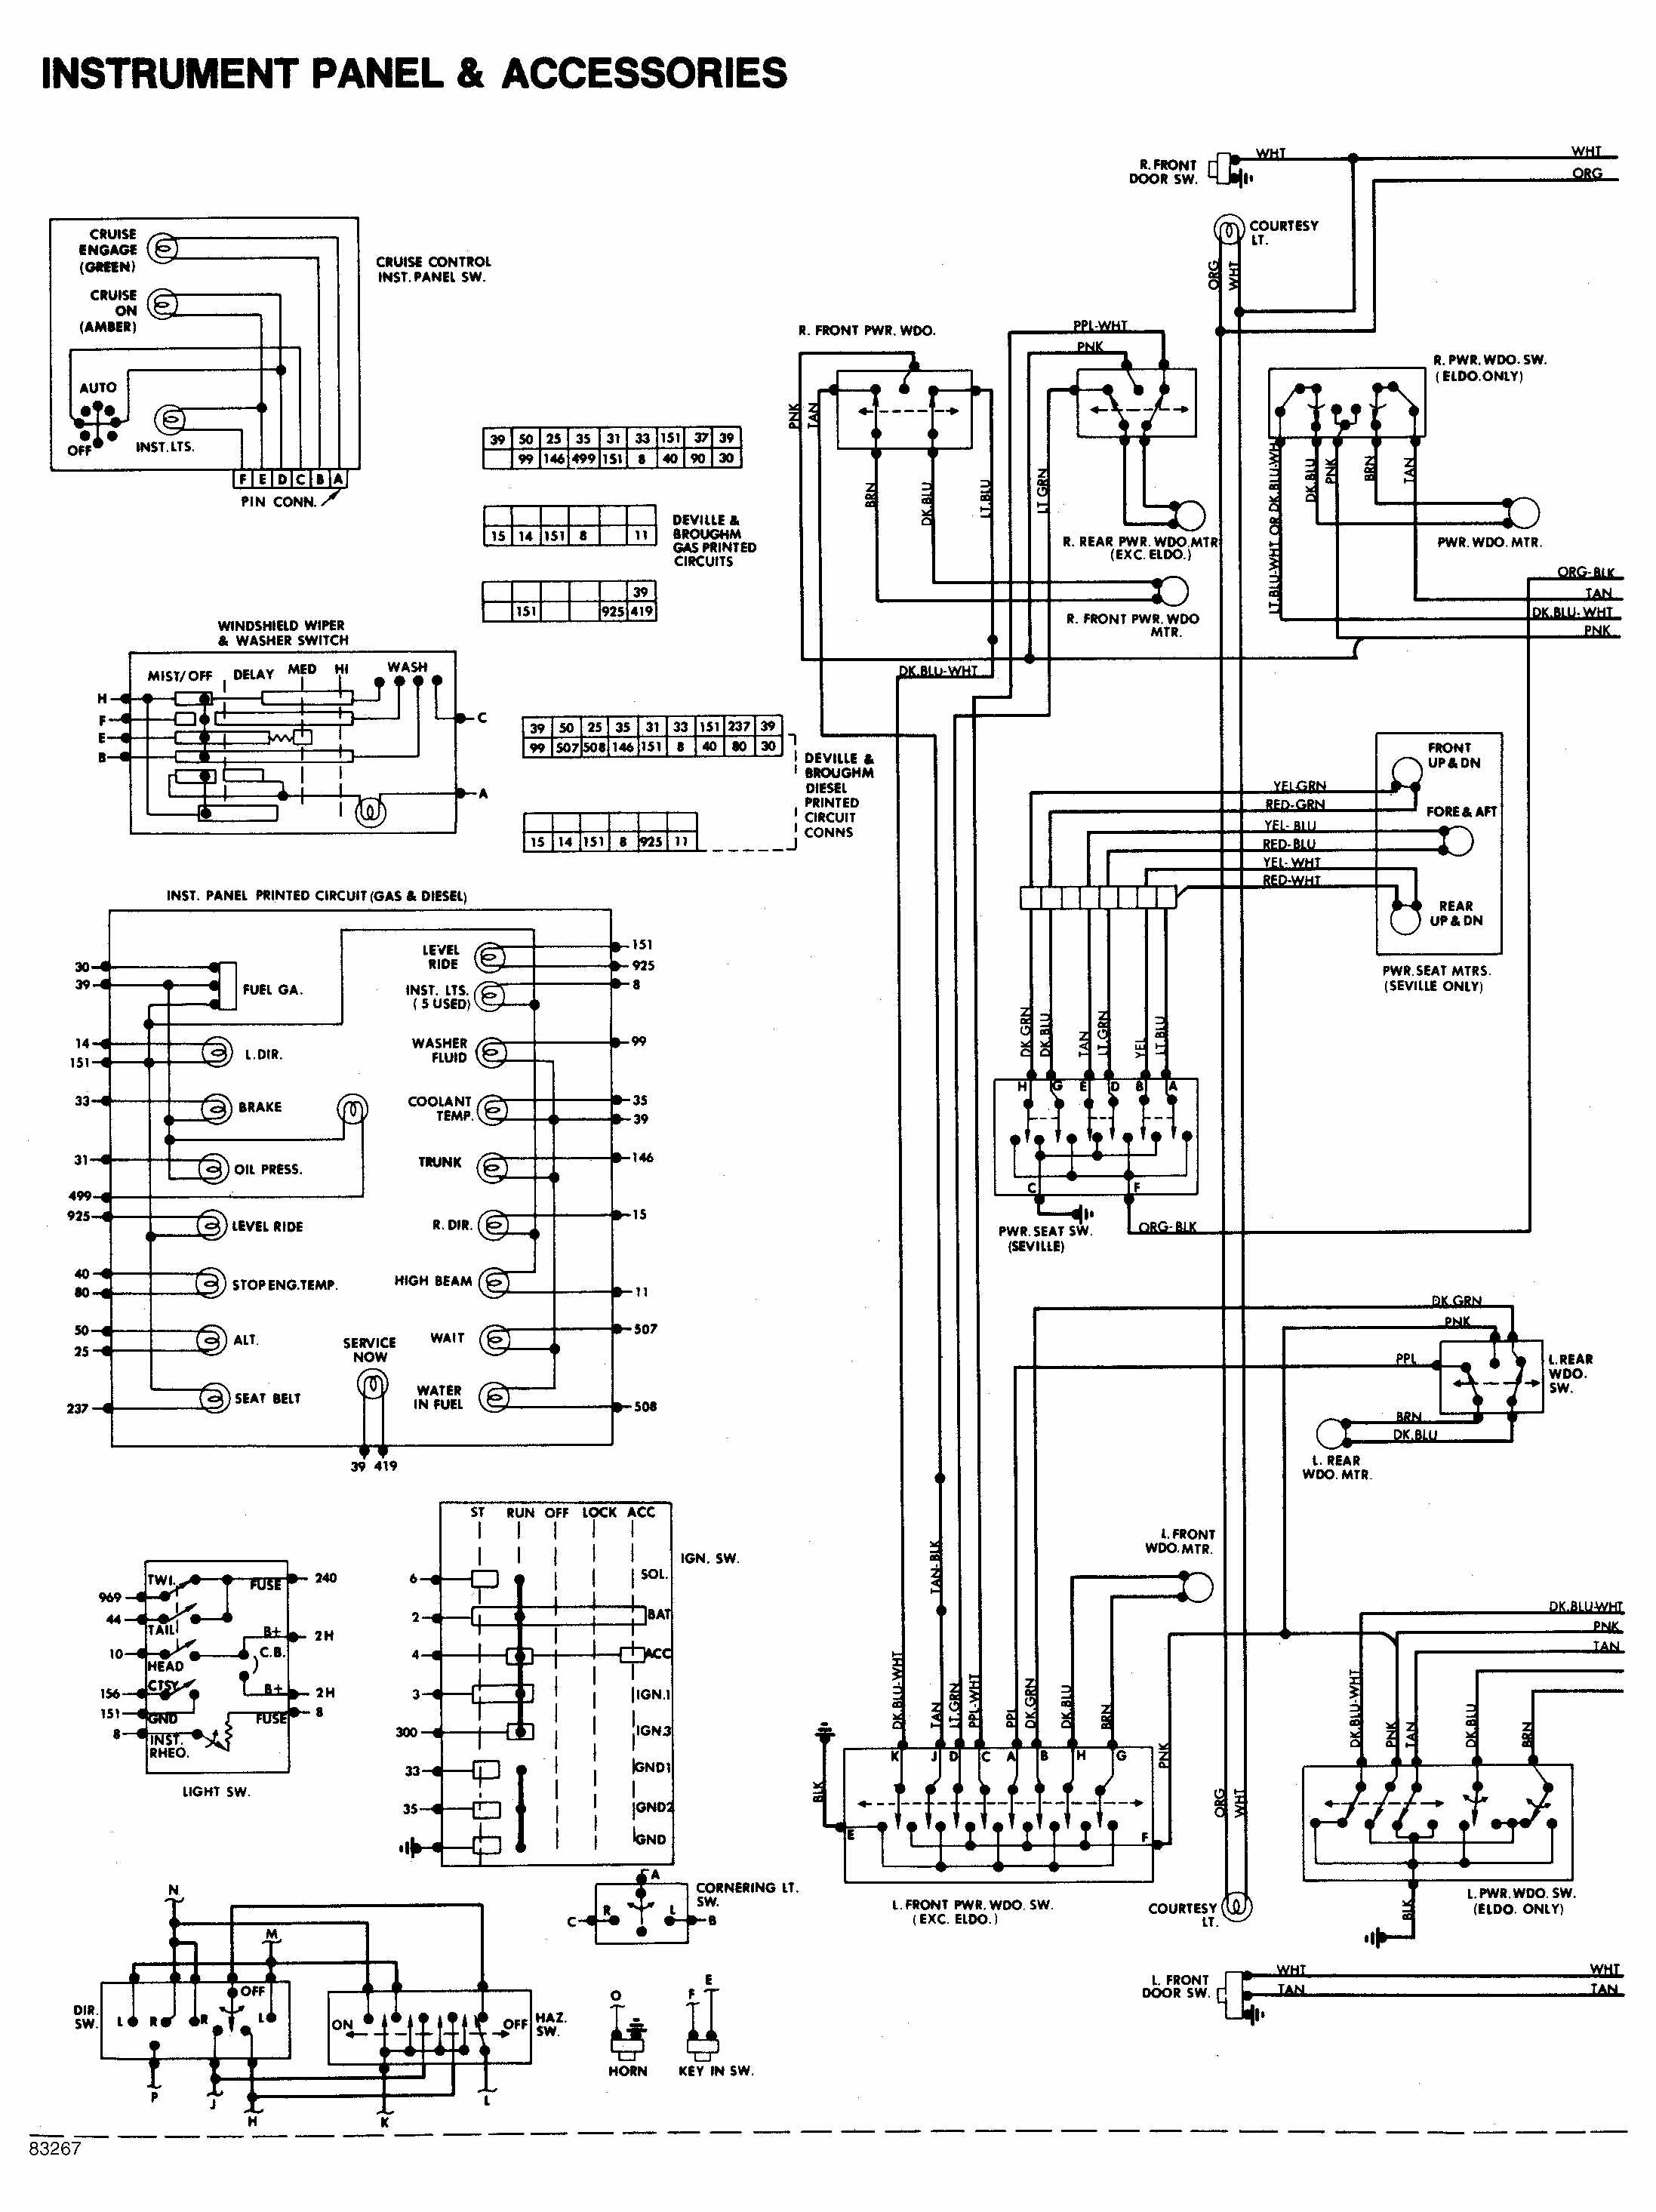 instrument panel and accessories wiring diagram of 1984 cadillac deville chevy diagrams 1984 El Camino Wiring-Diagram at panicattacktreatment.co